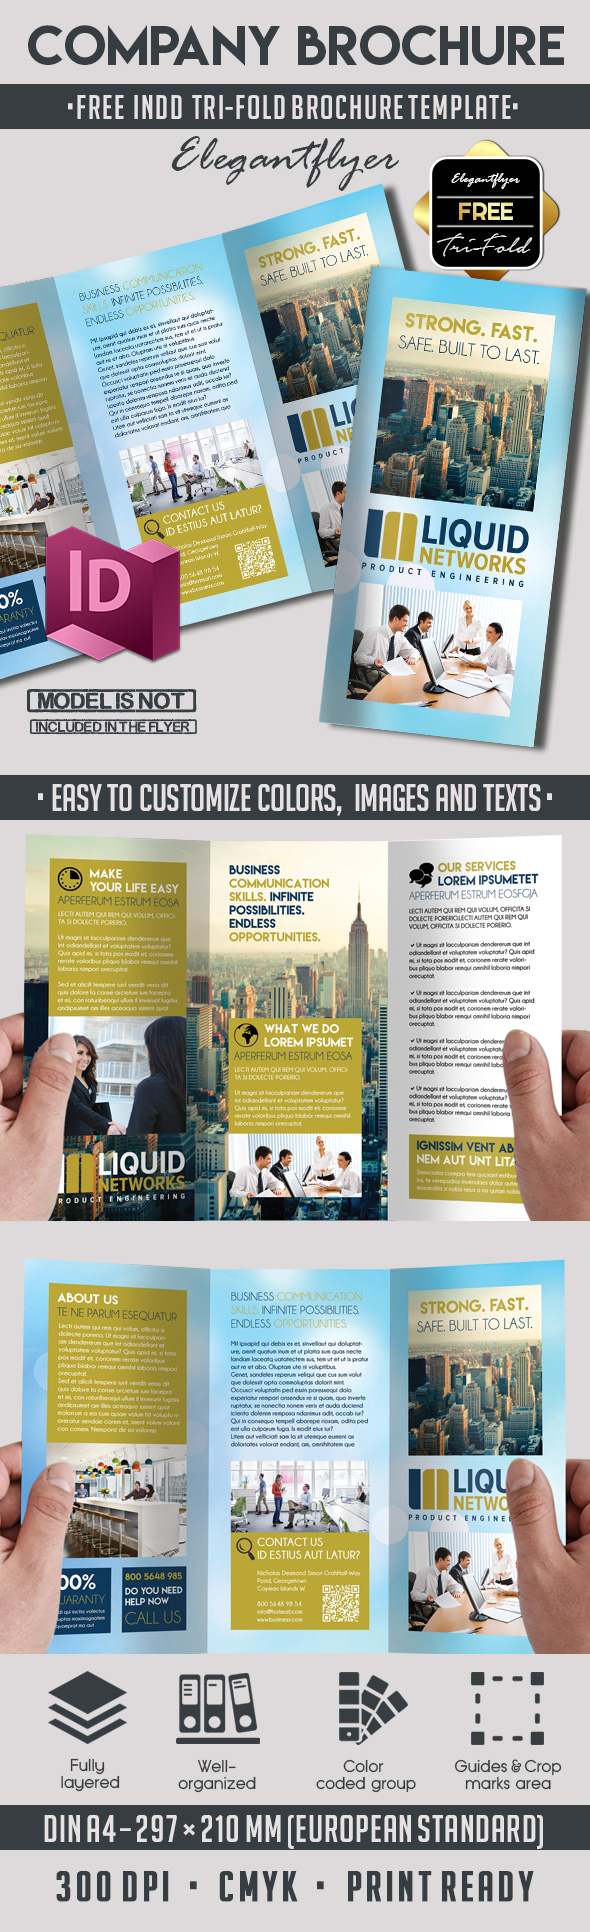 5 Powerful Free Adobe InDesign Brochures templates! | by ElegantFlyer